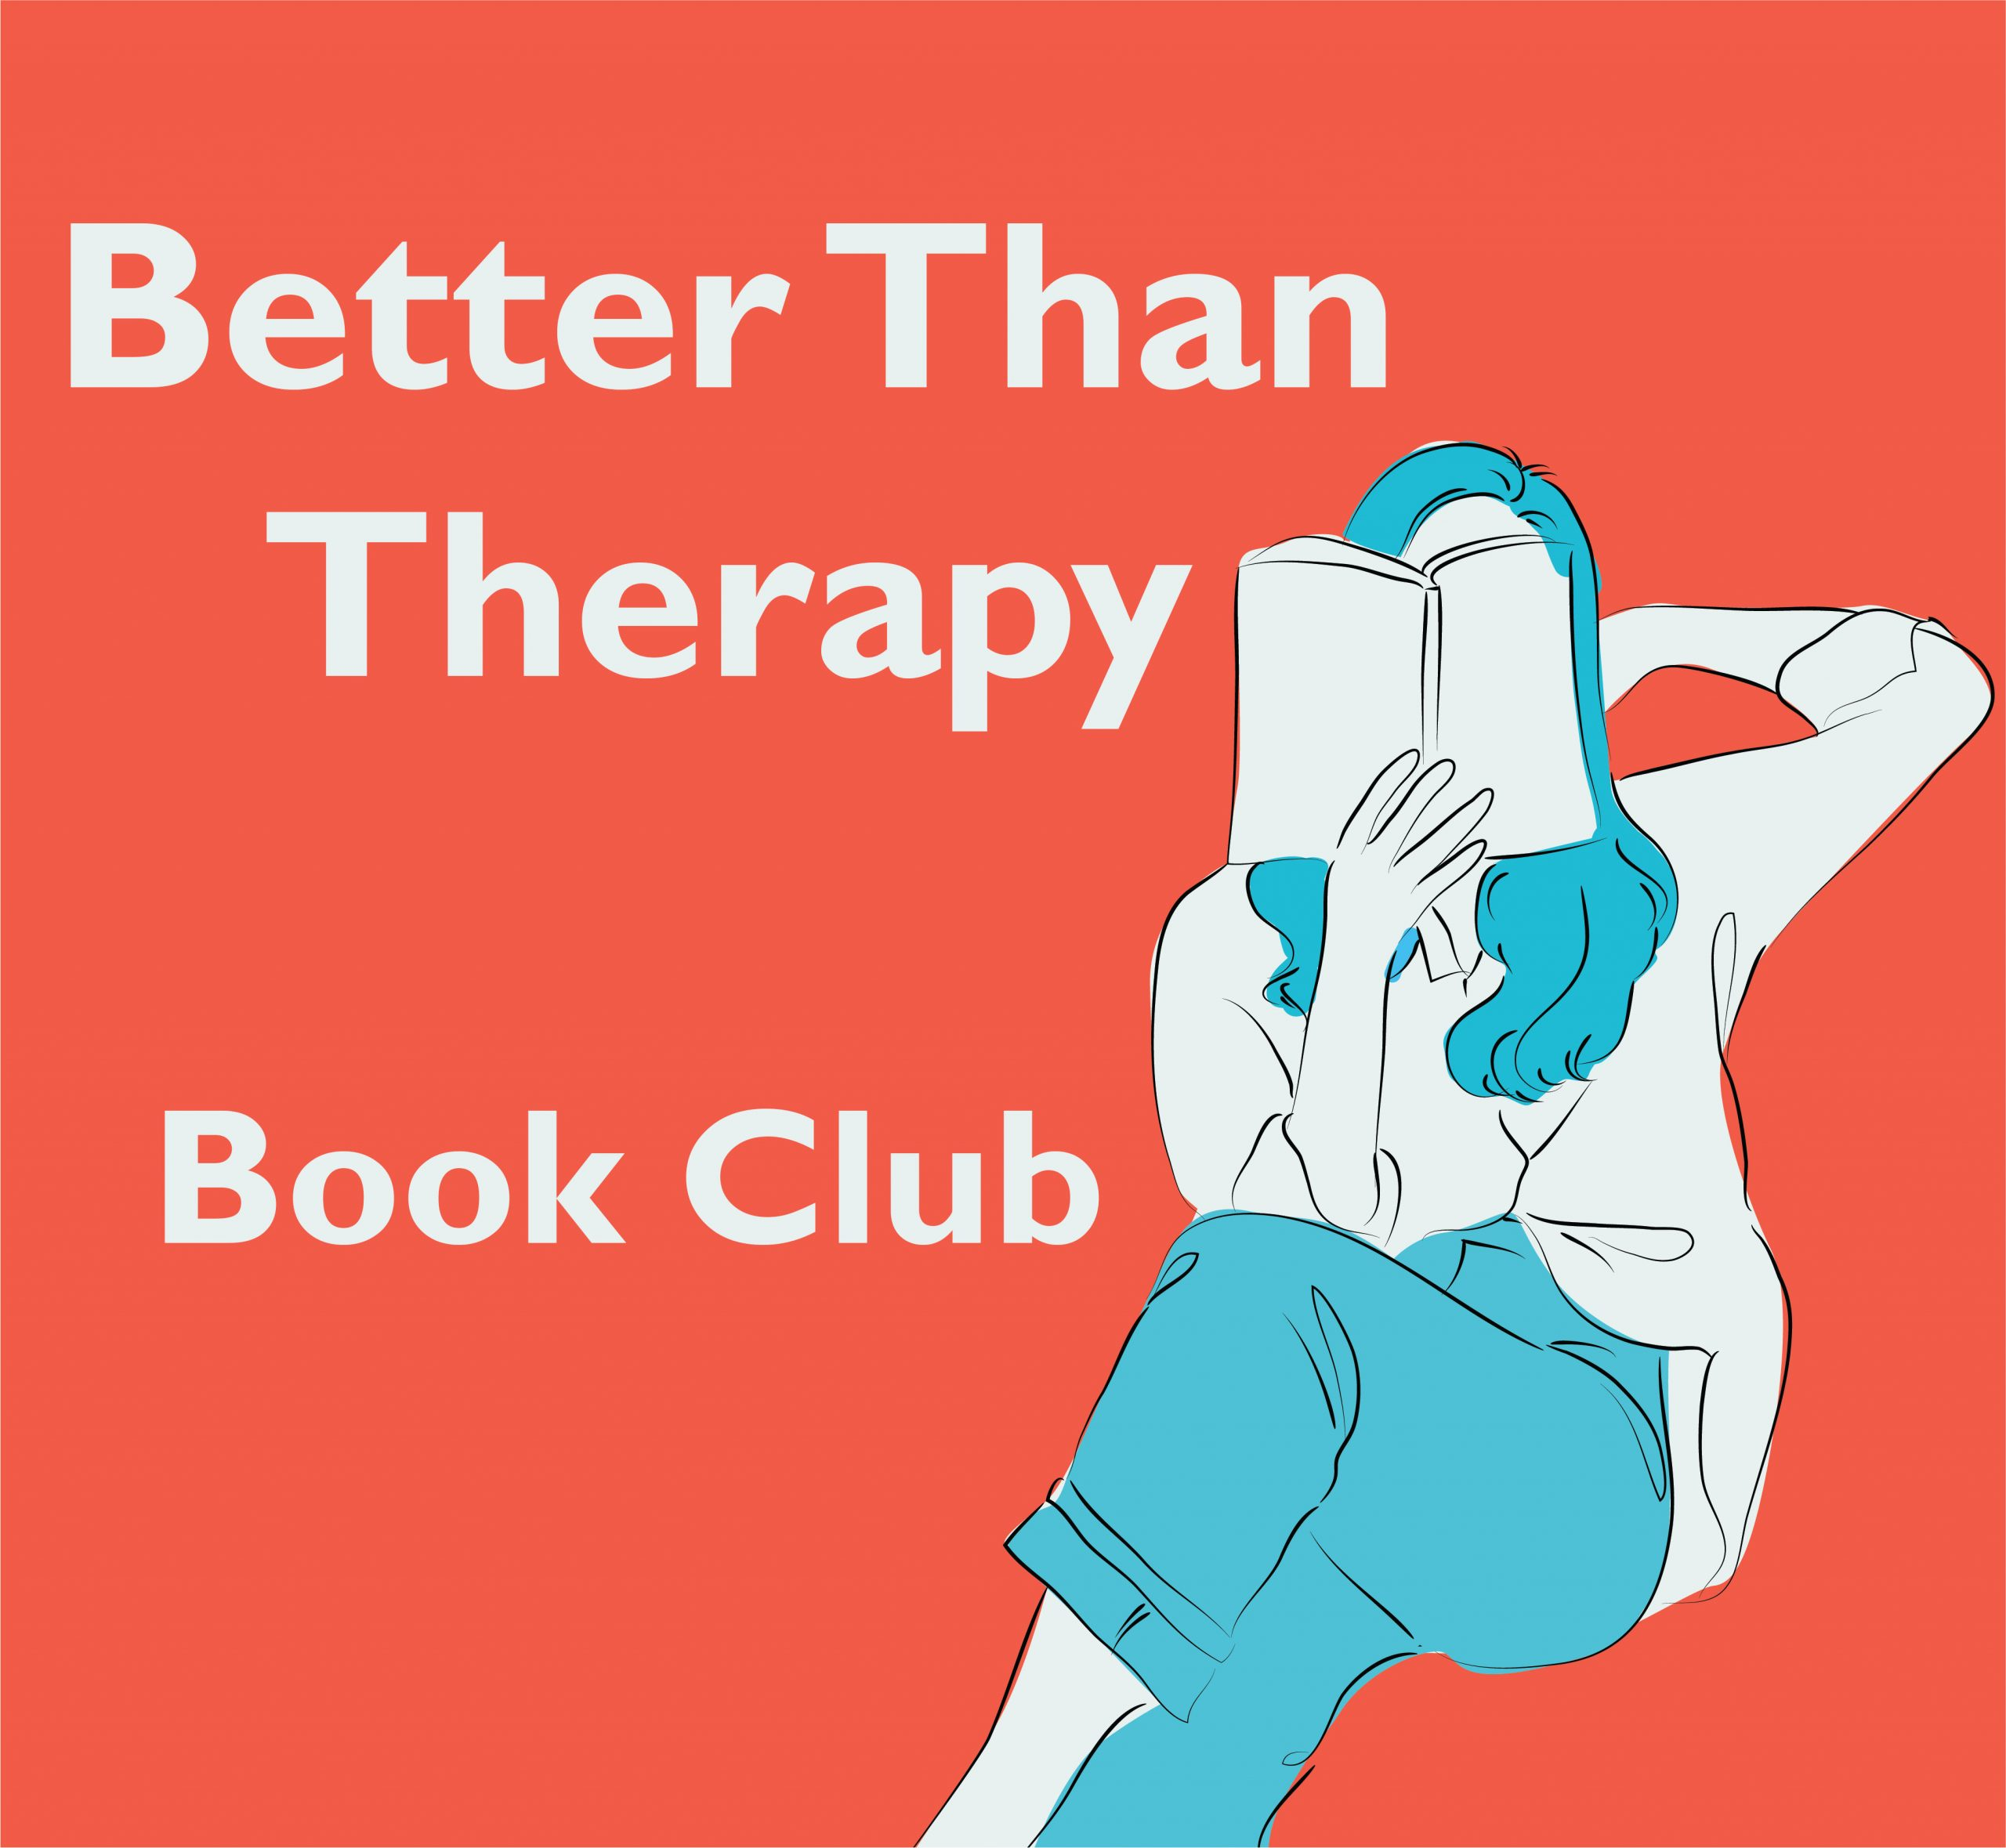 Better than Therapy Book Club